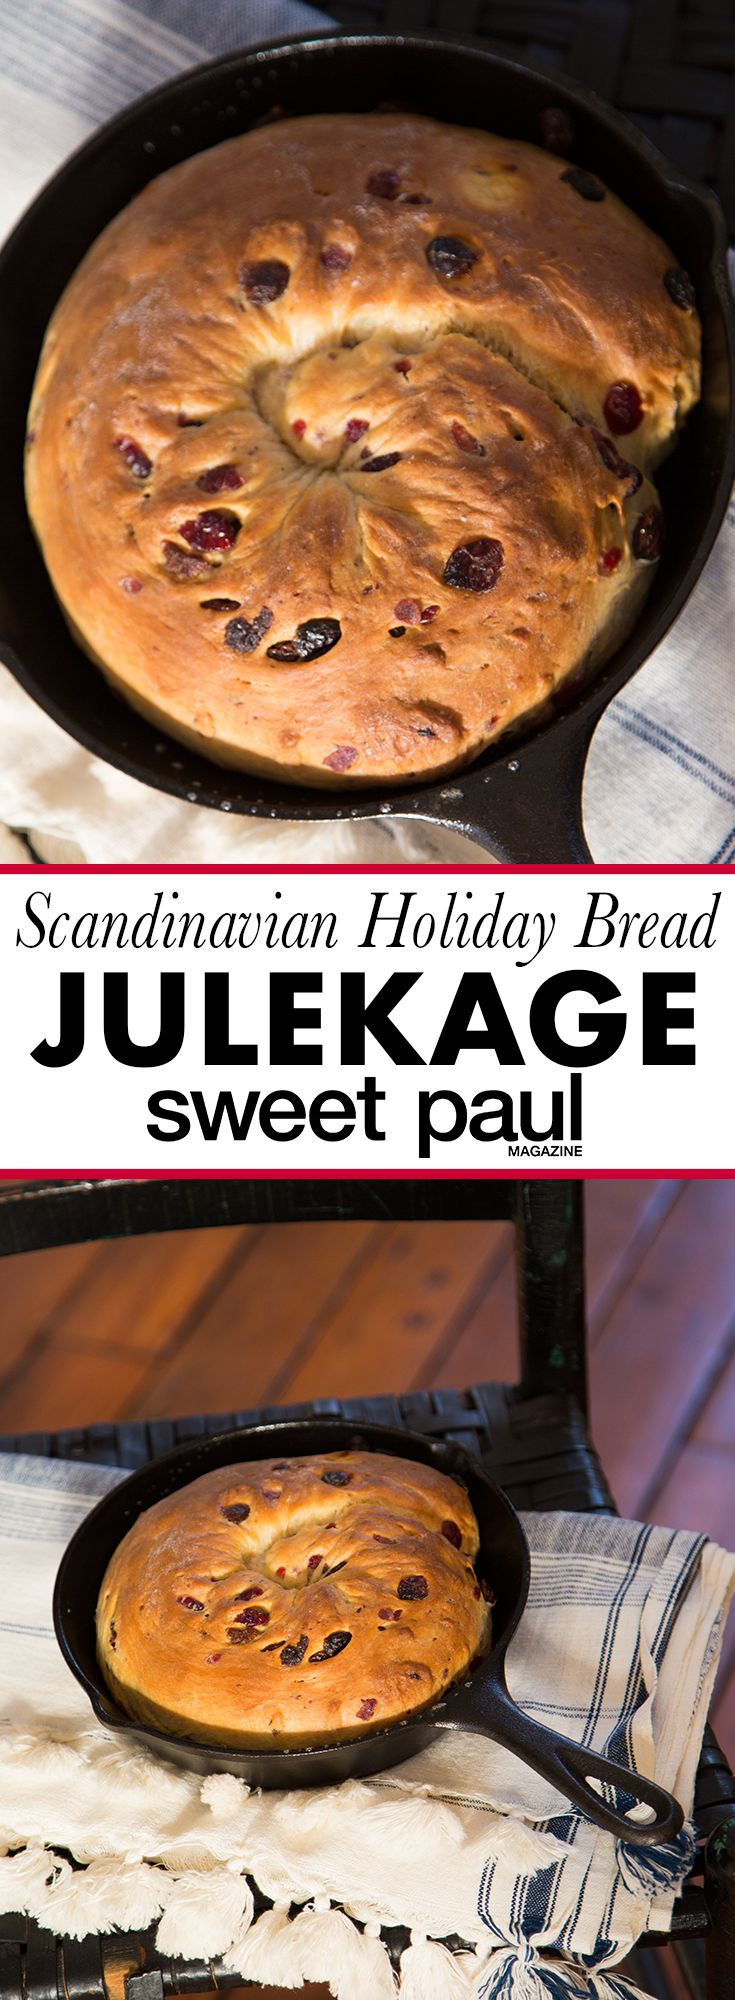 A festive Scandinavian holiday yeast bread with cardamom and dried fruit!